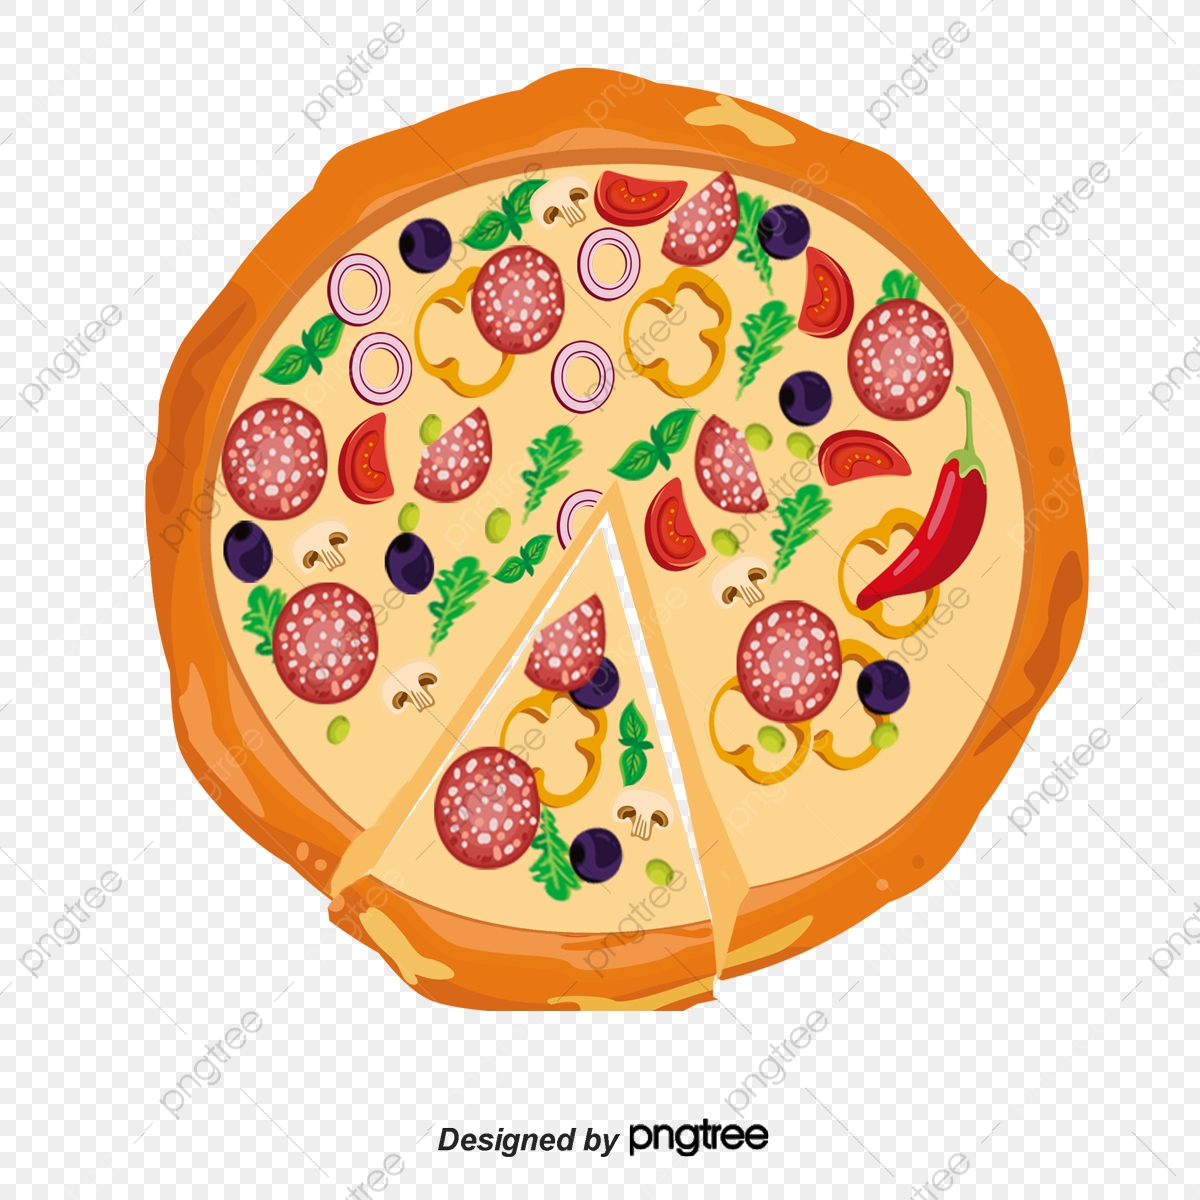 Vector Pizza, Pizza Vector, Fast Food, Tomato Vegetable.